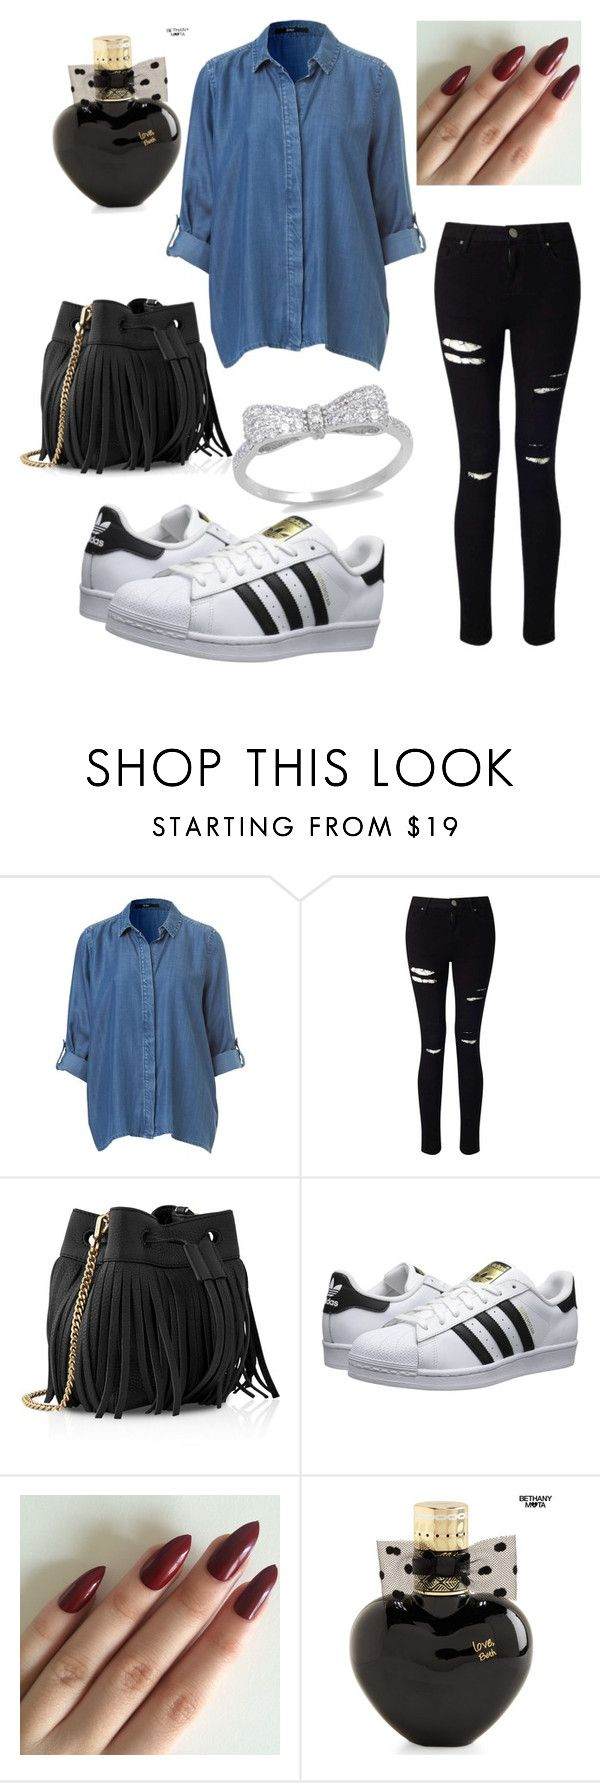 """casual saturday"" by crazisuki on Polyvore featuring Miss Selfridge, Whistles, adidas Originals and Aéropostale"